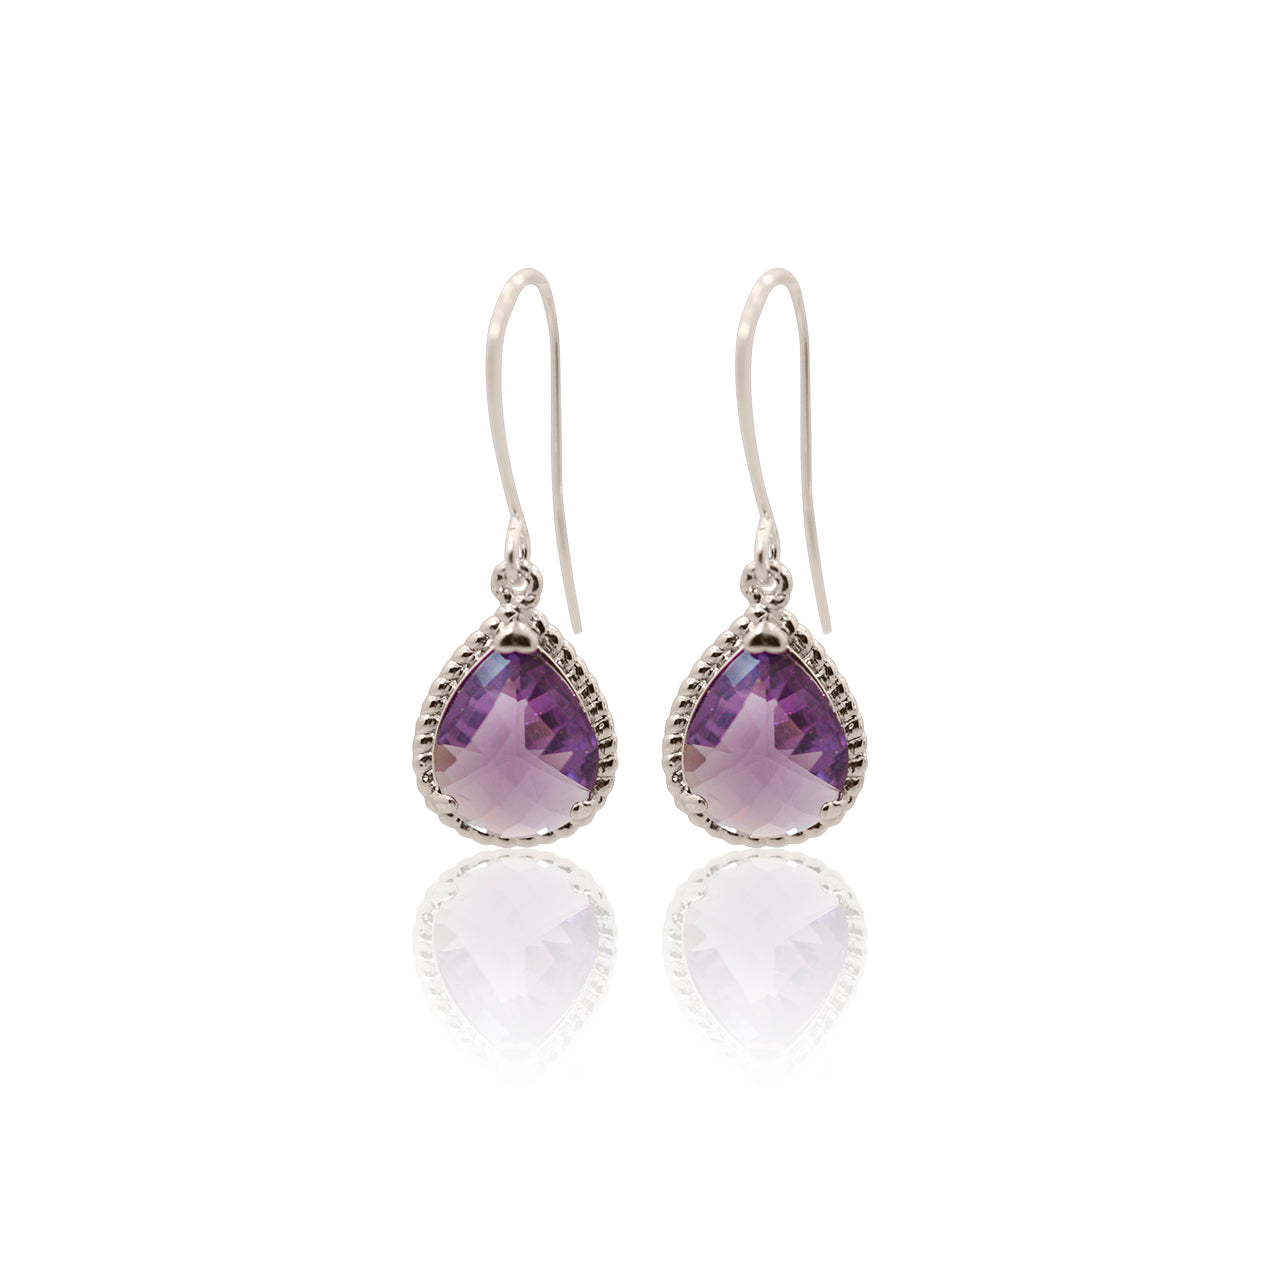 Amethyst Exquisite Earrings